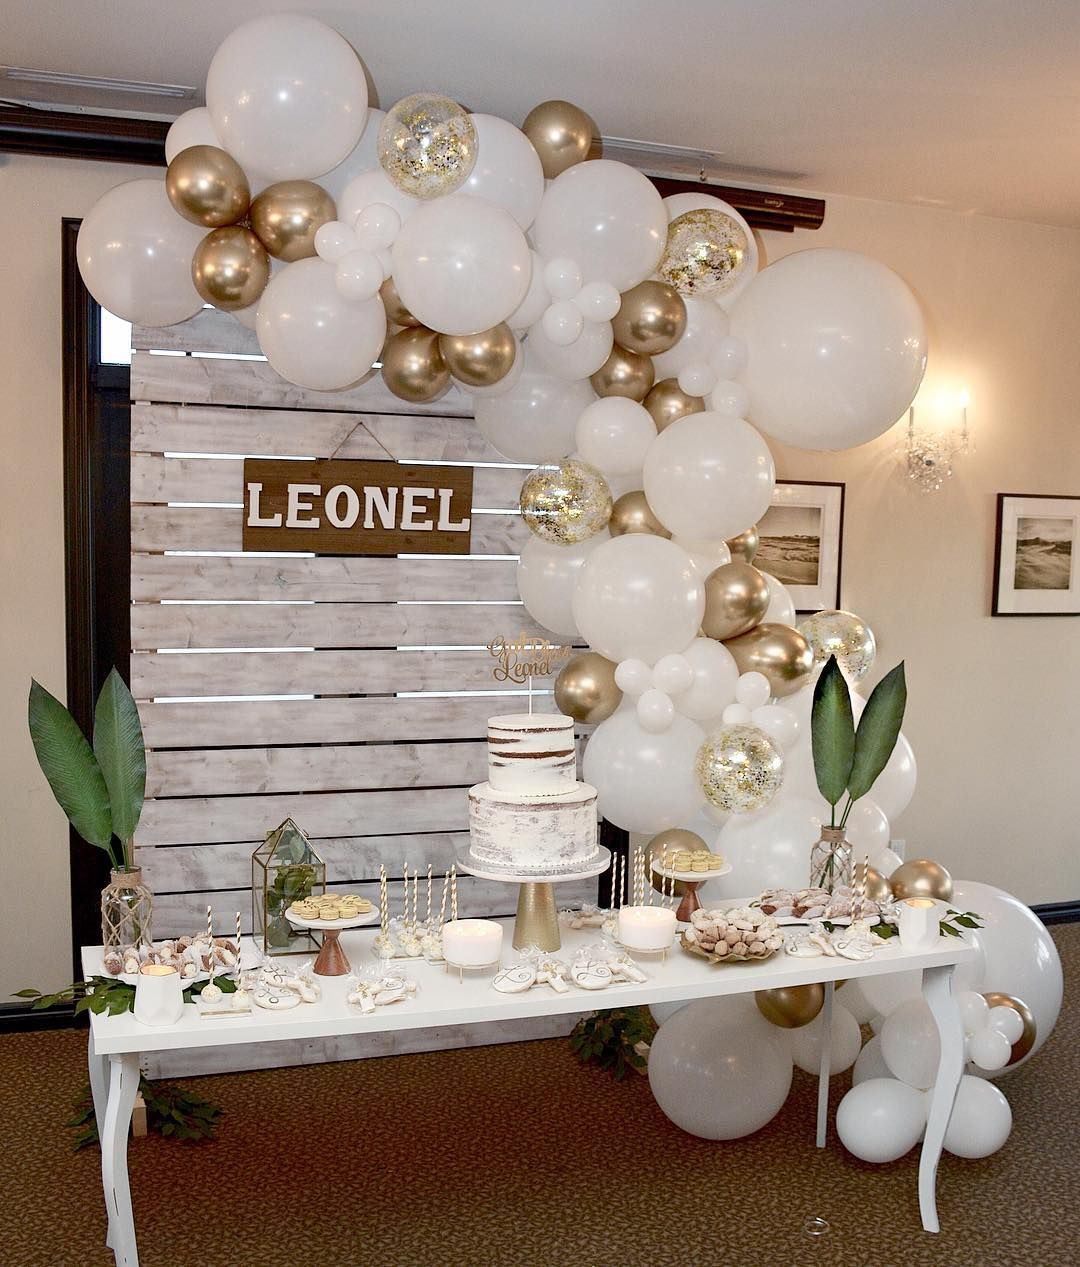 Balloons kids party ideas kidsparty decoration weballoonz on instagram also best baby shower may images in rh pinterest